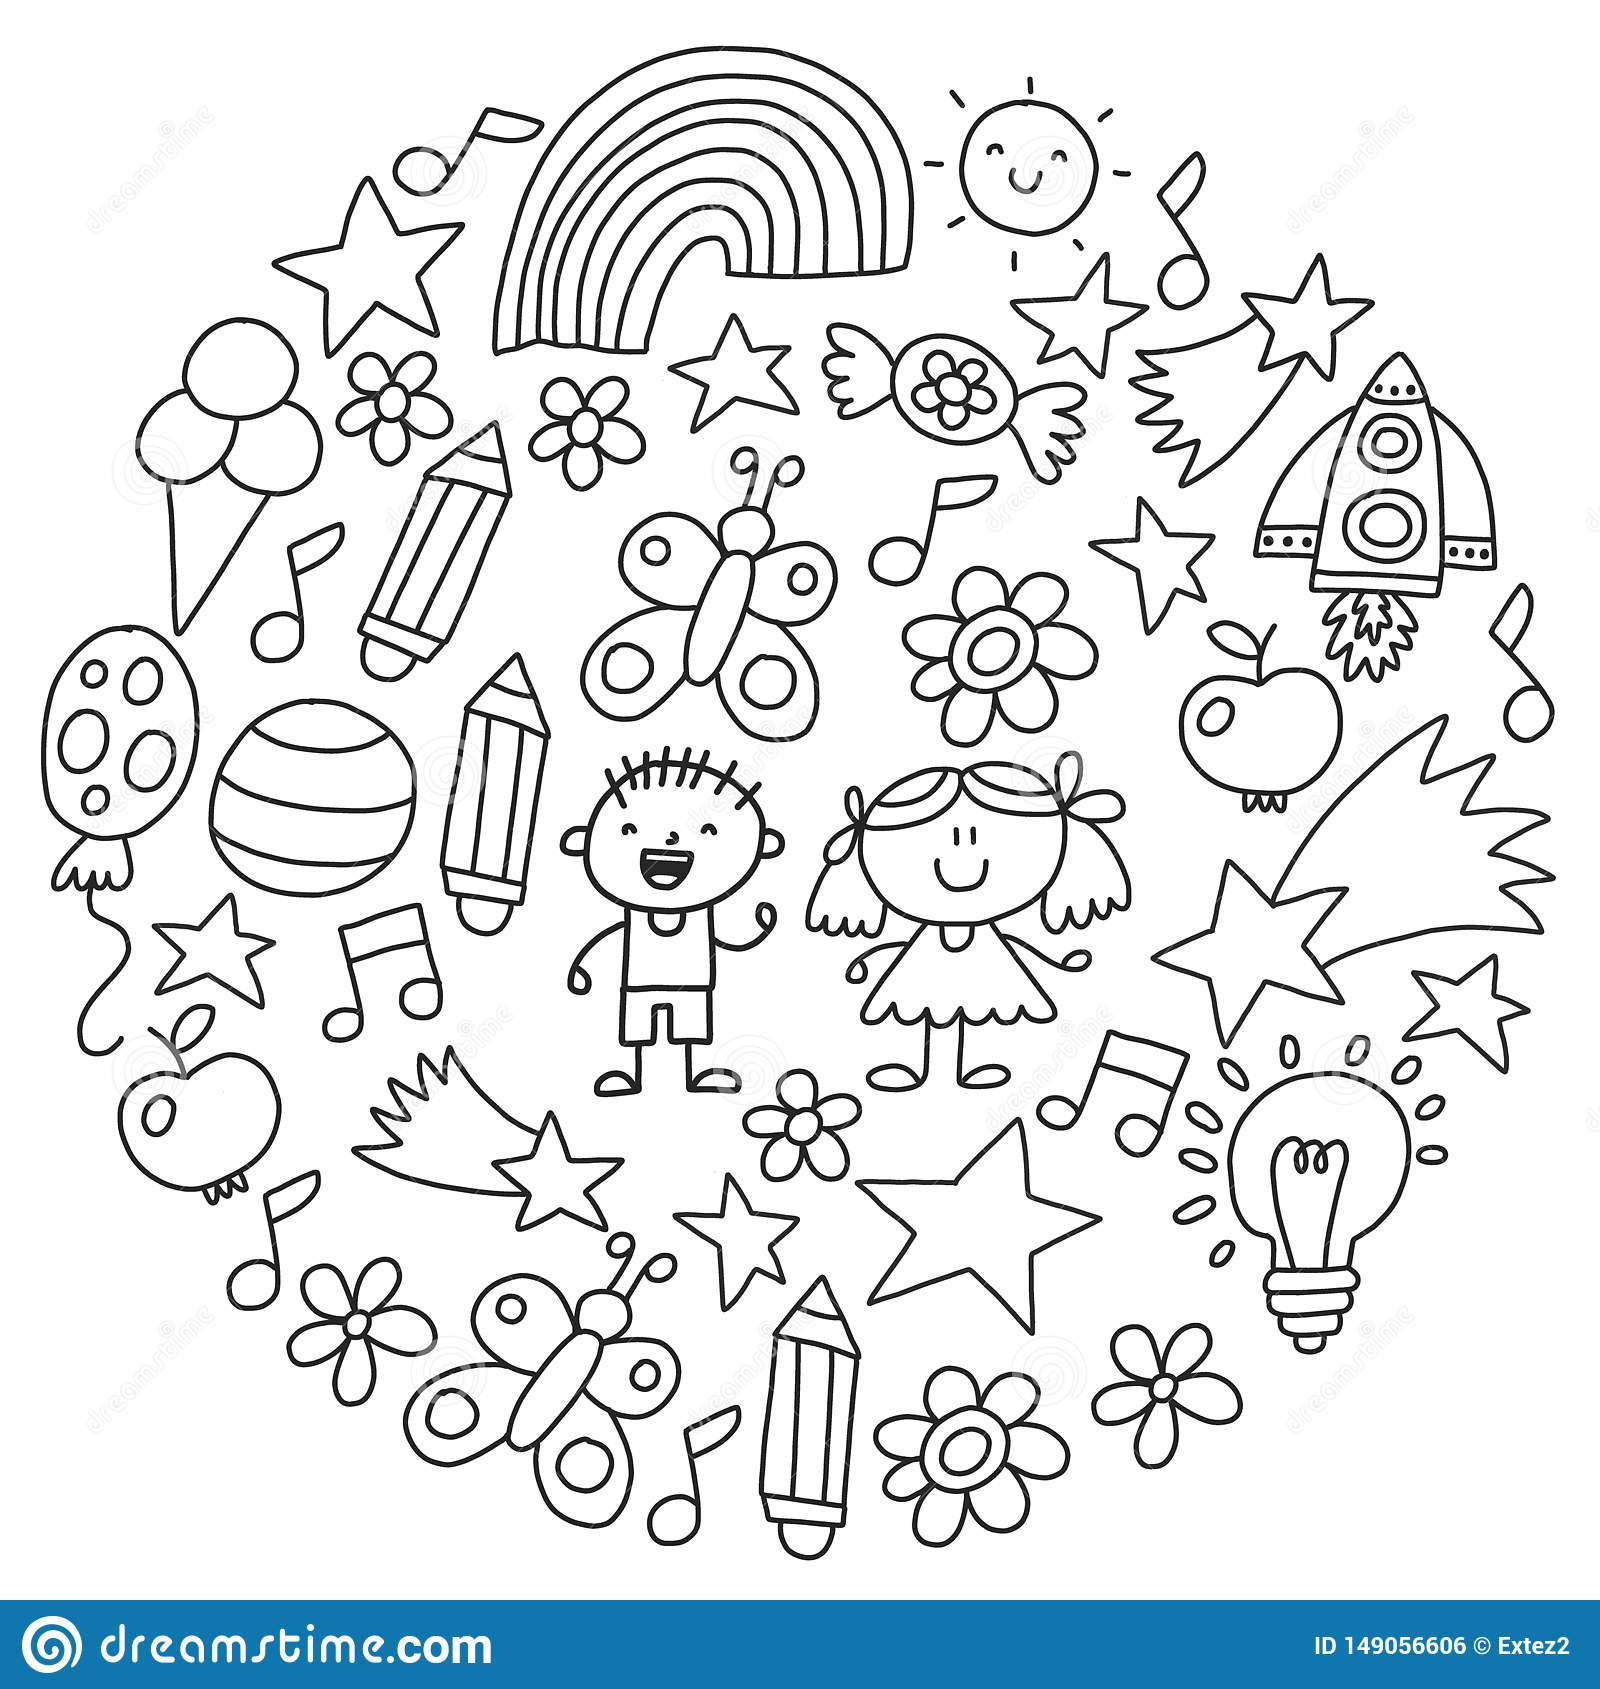 Kindergarten Monochrome Hand Drawn Children Garden